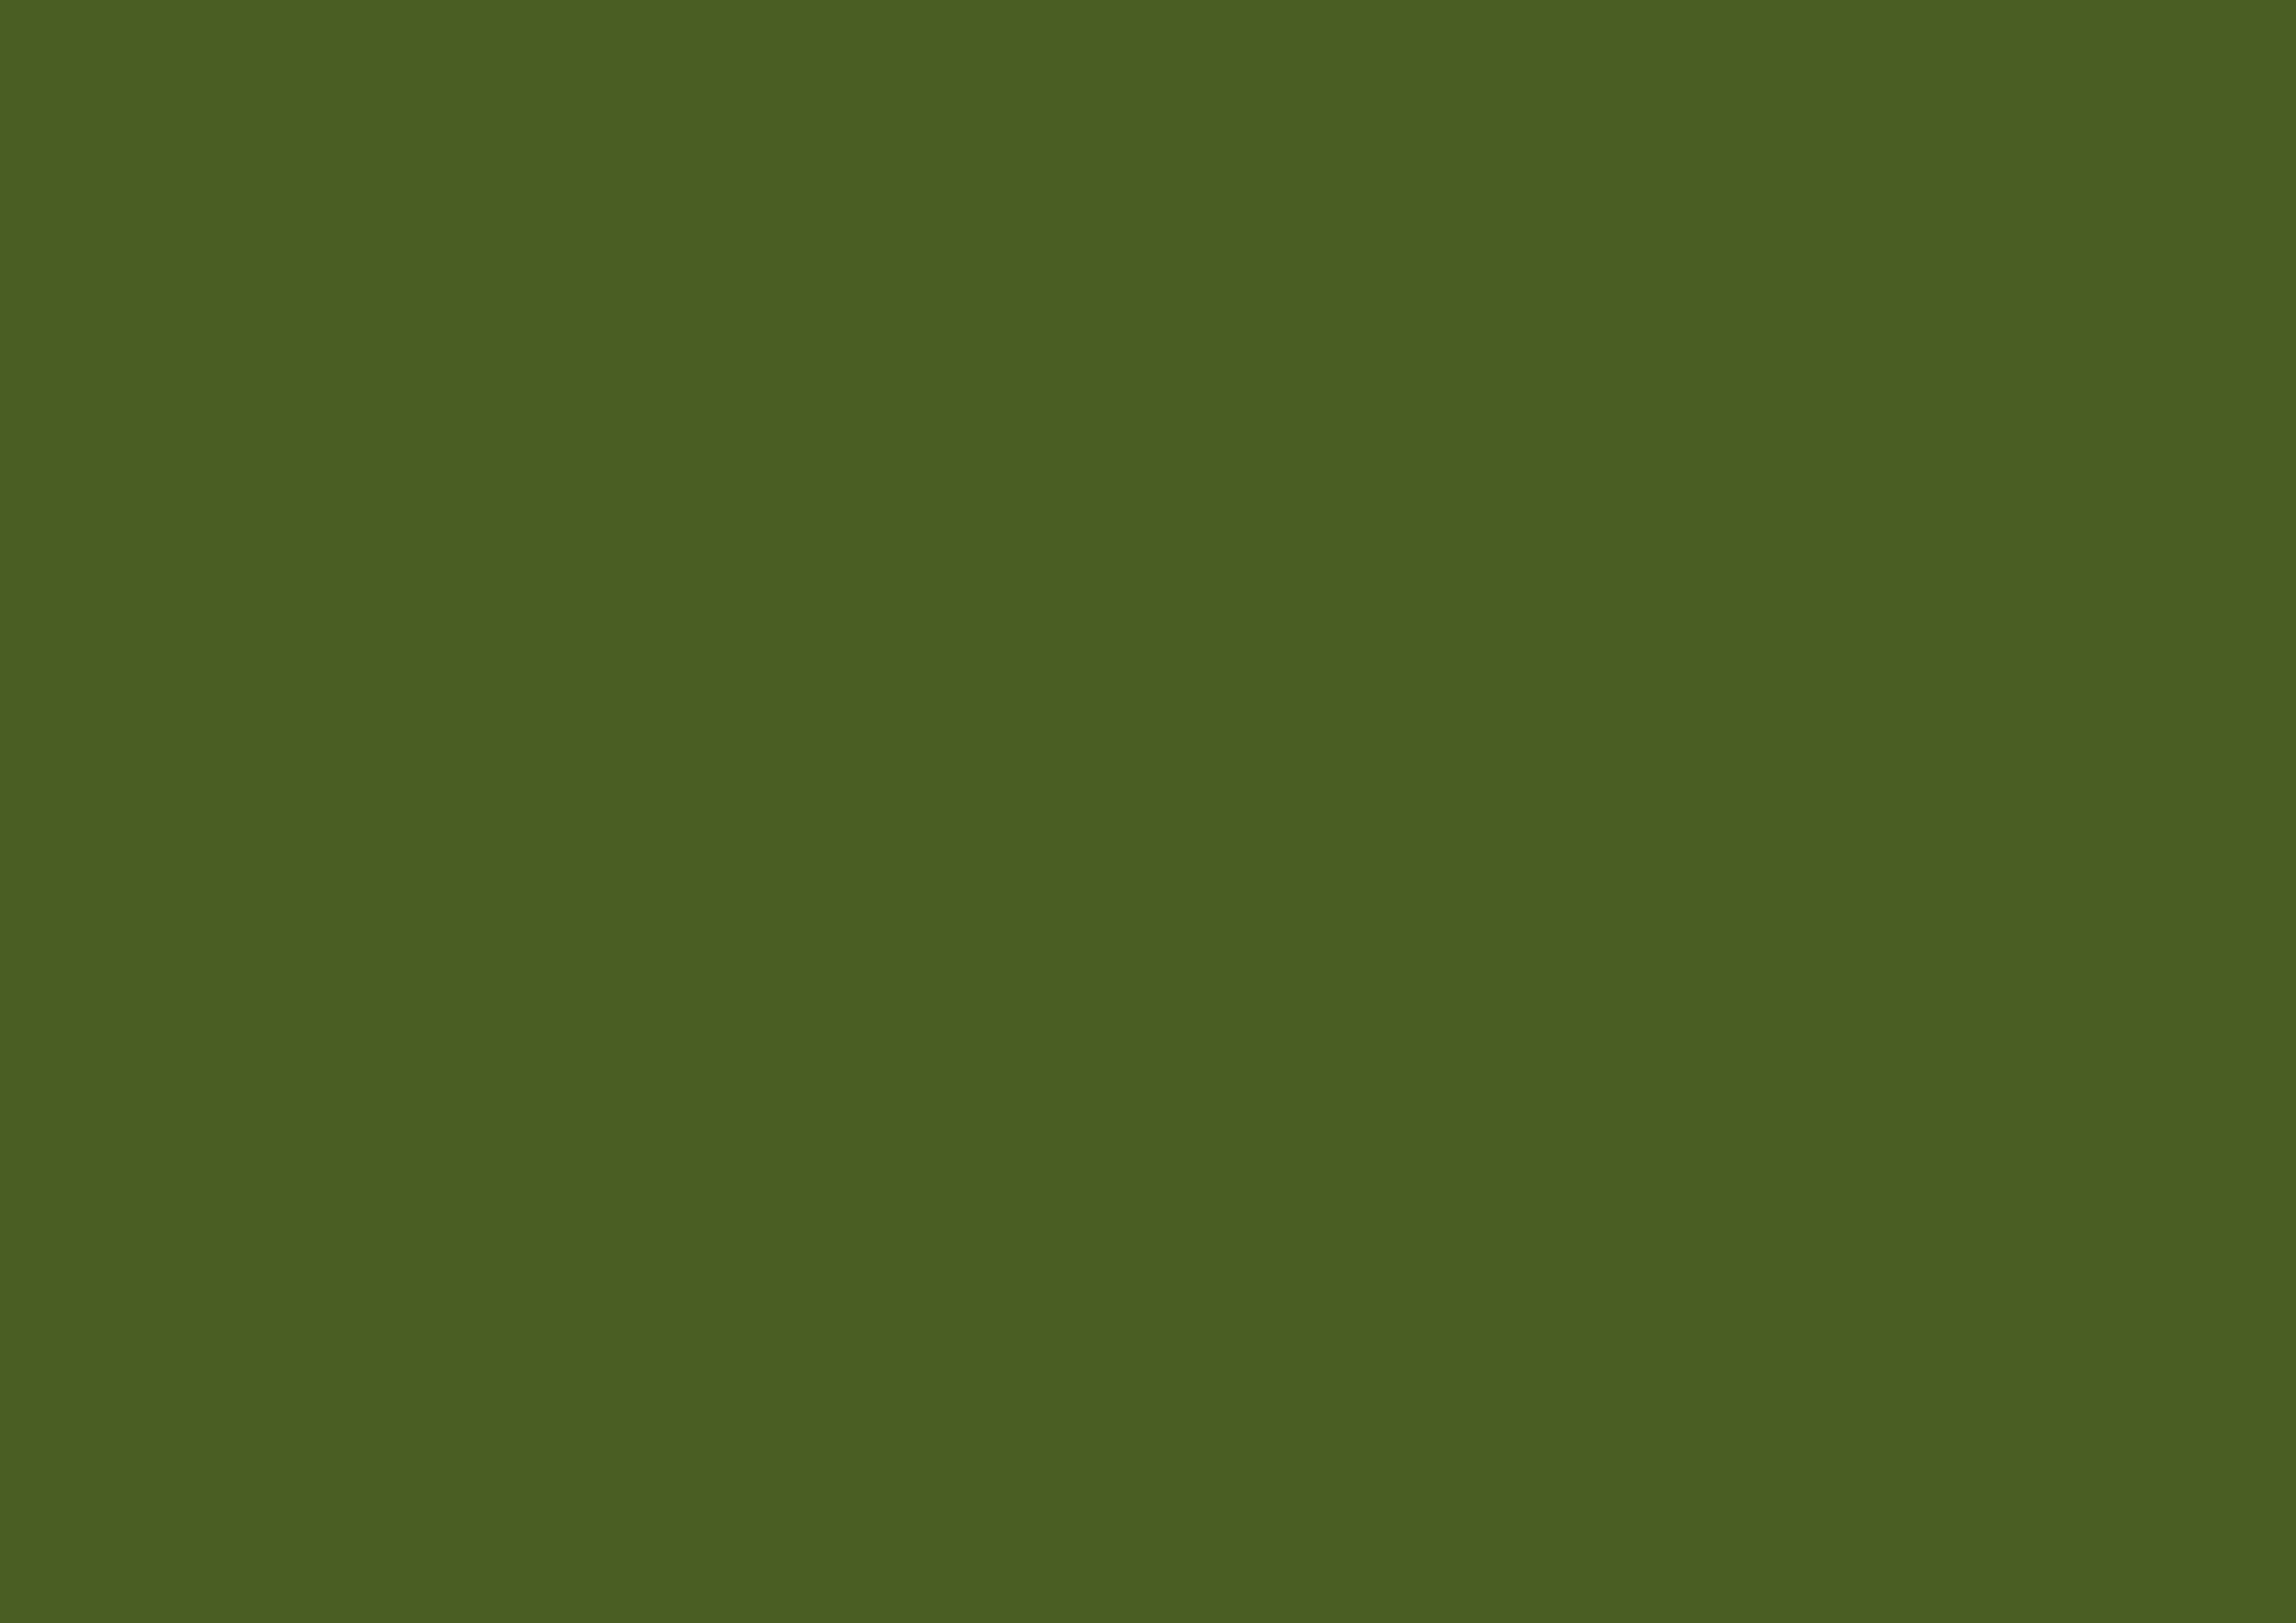 3508x2480 Dark Moss Green Solid Color Background